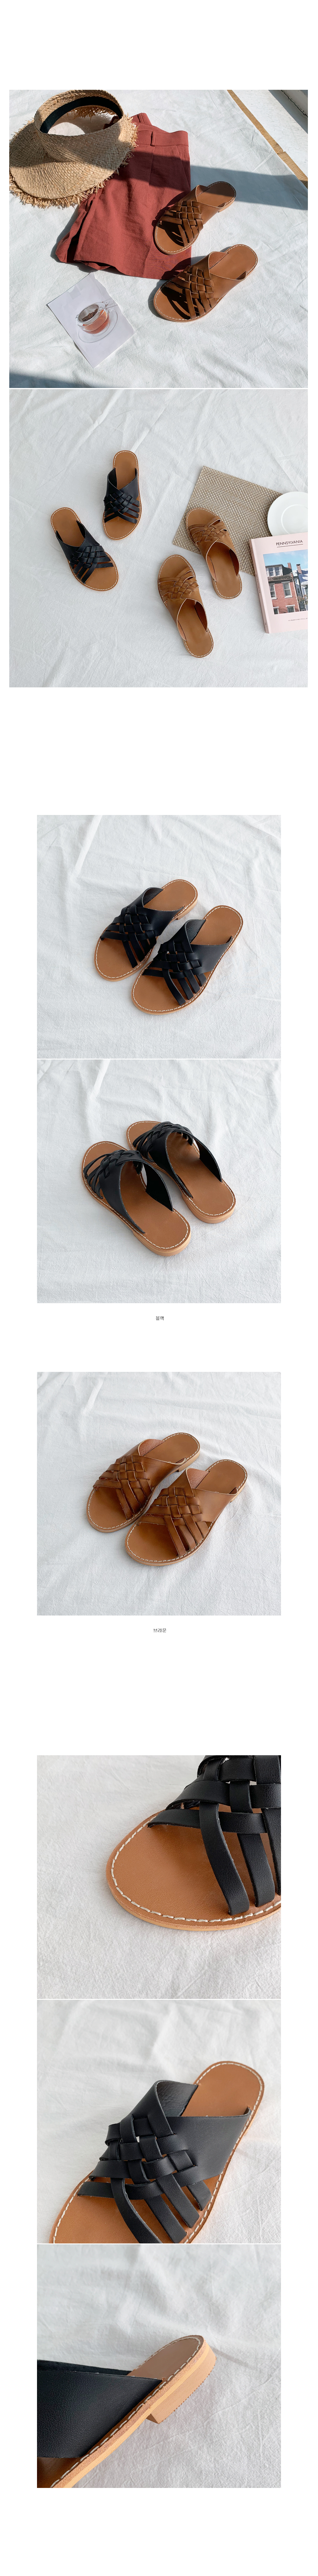 Kancho Slippers Sandals